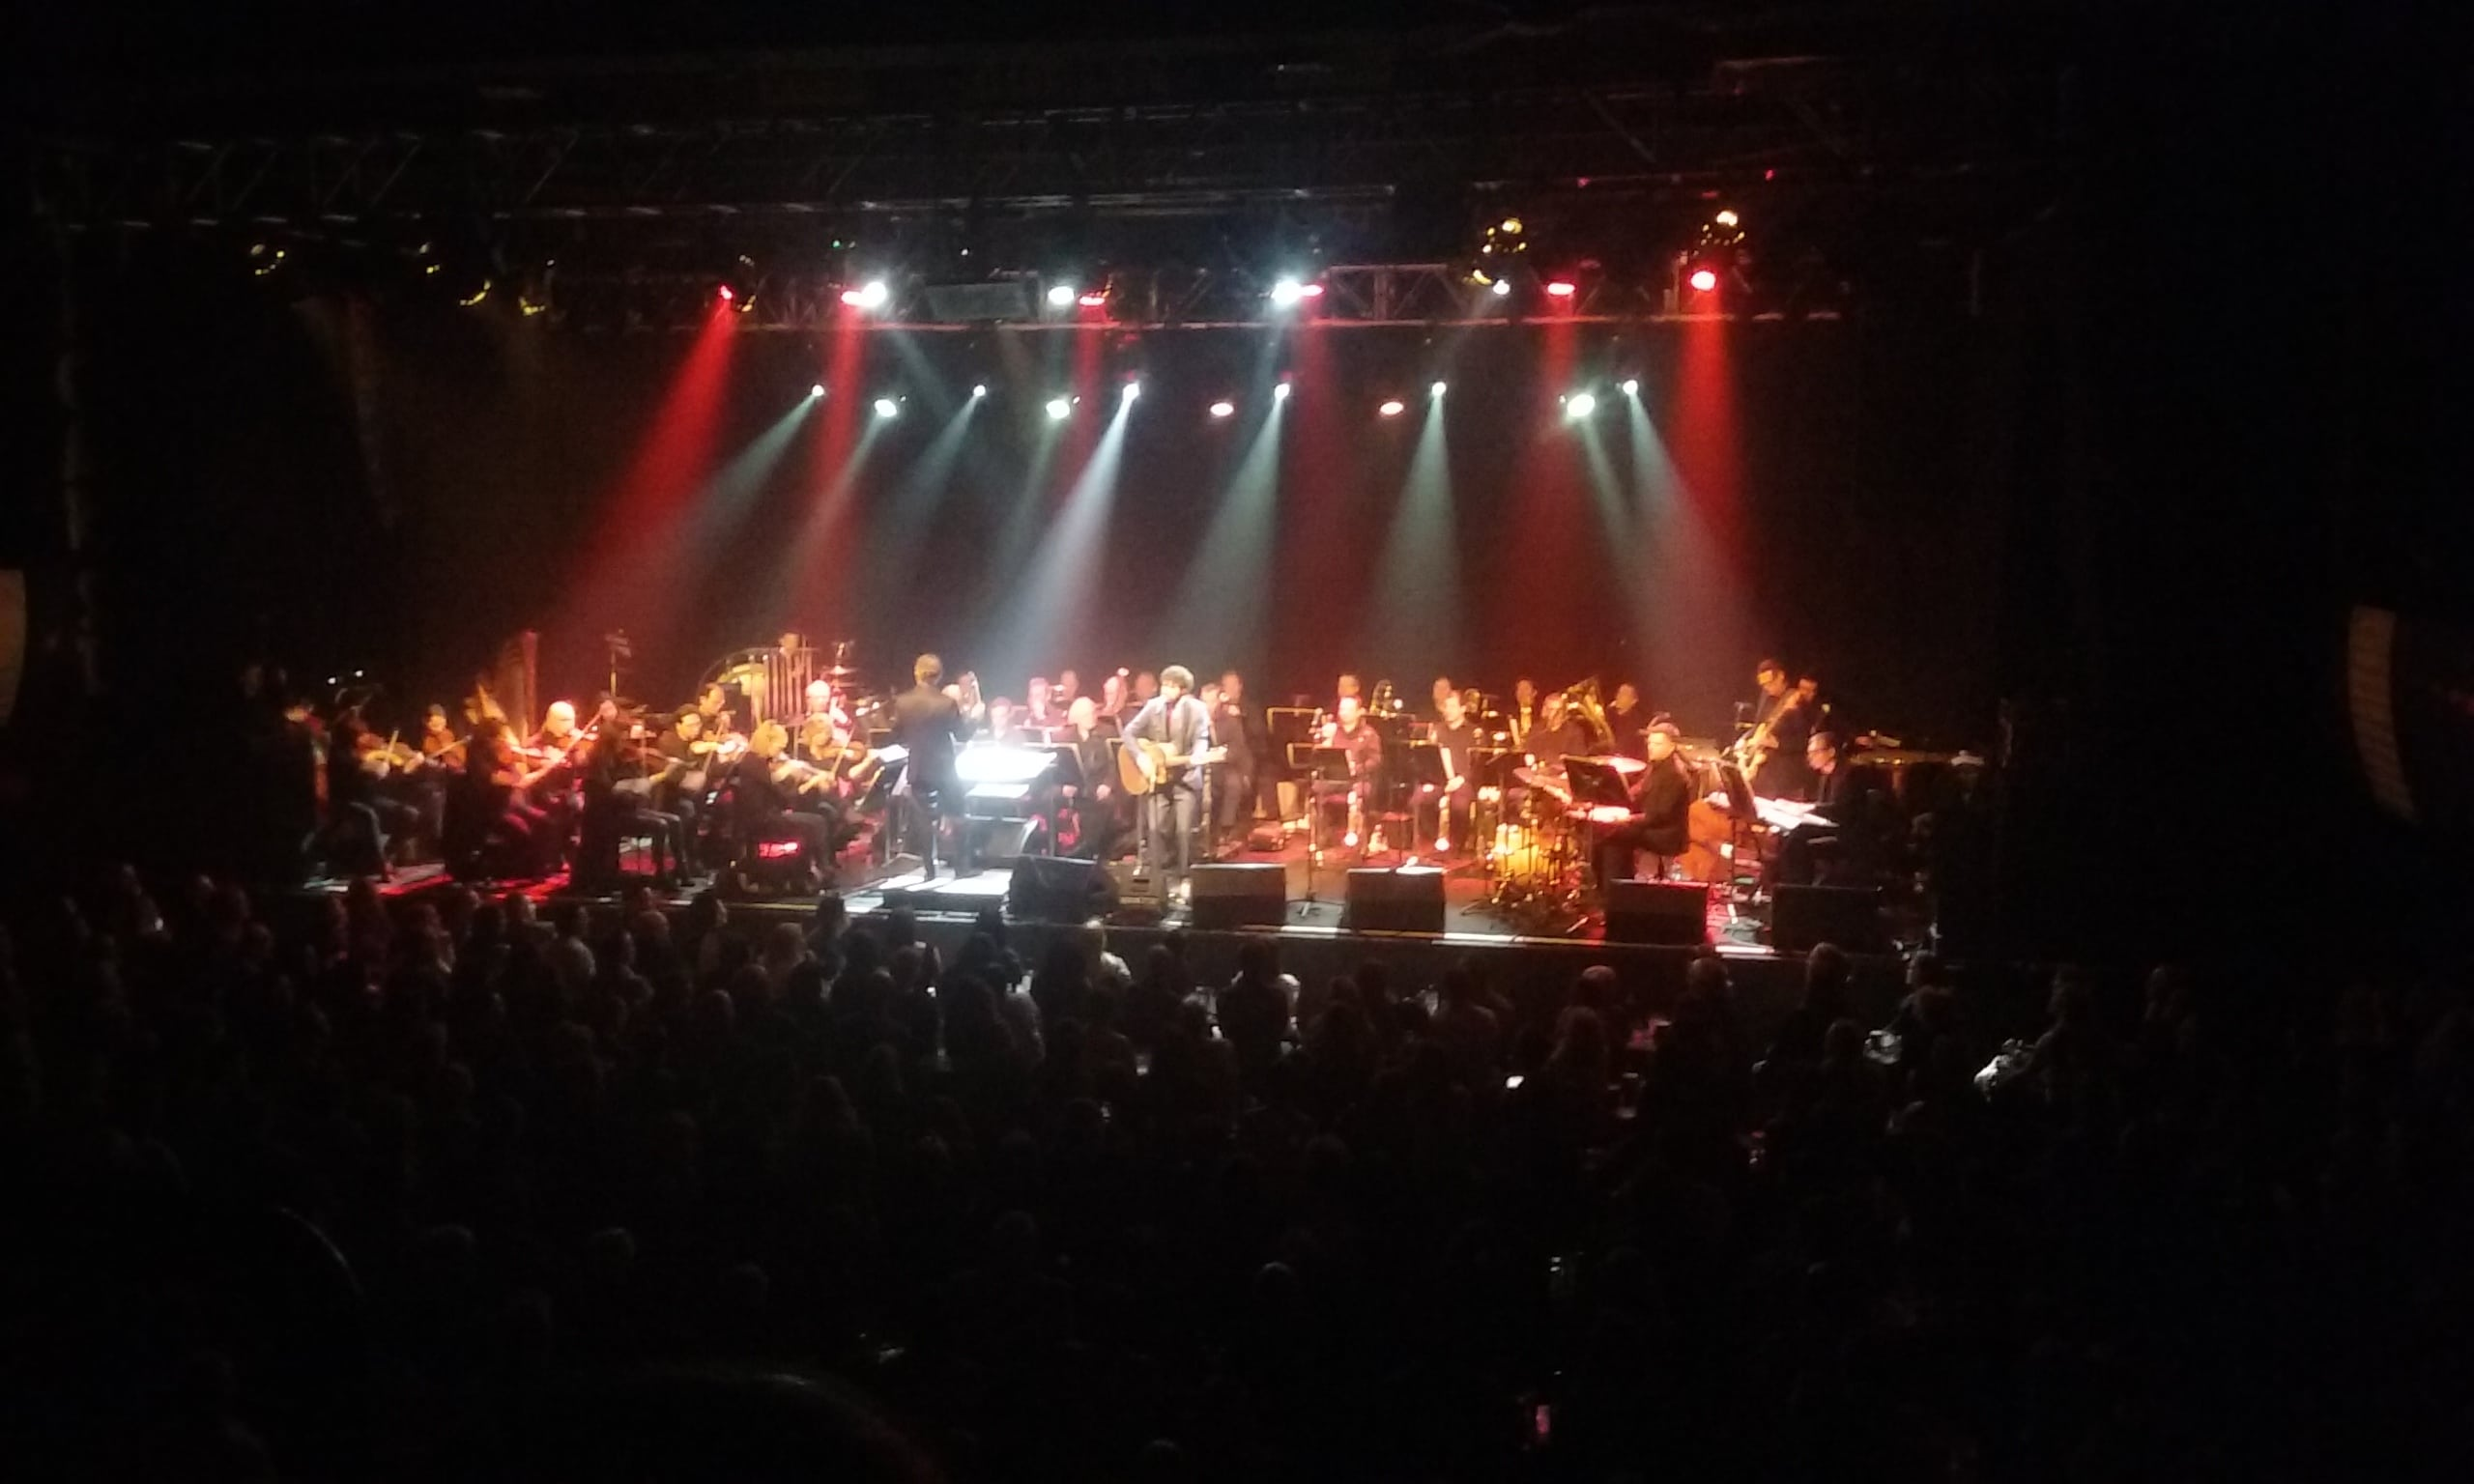 Declan O'Rourke & Orchestra at Vicar Street